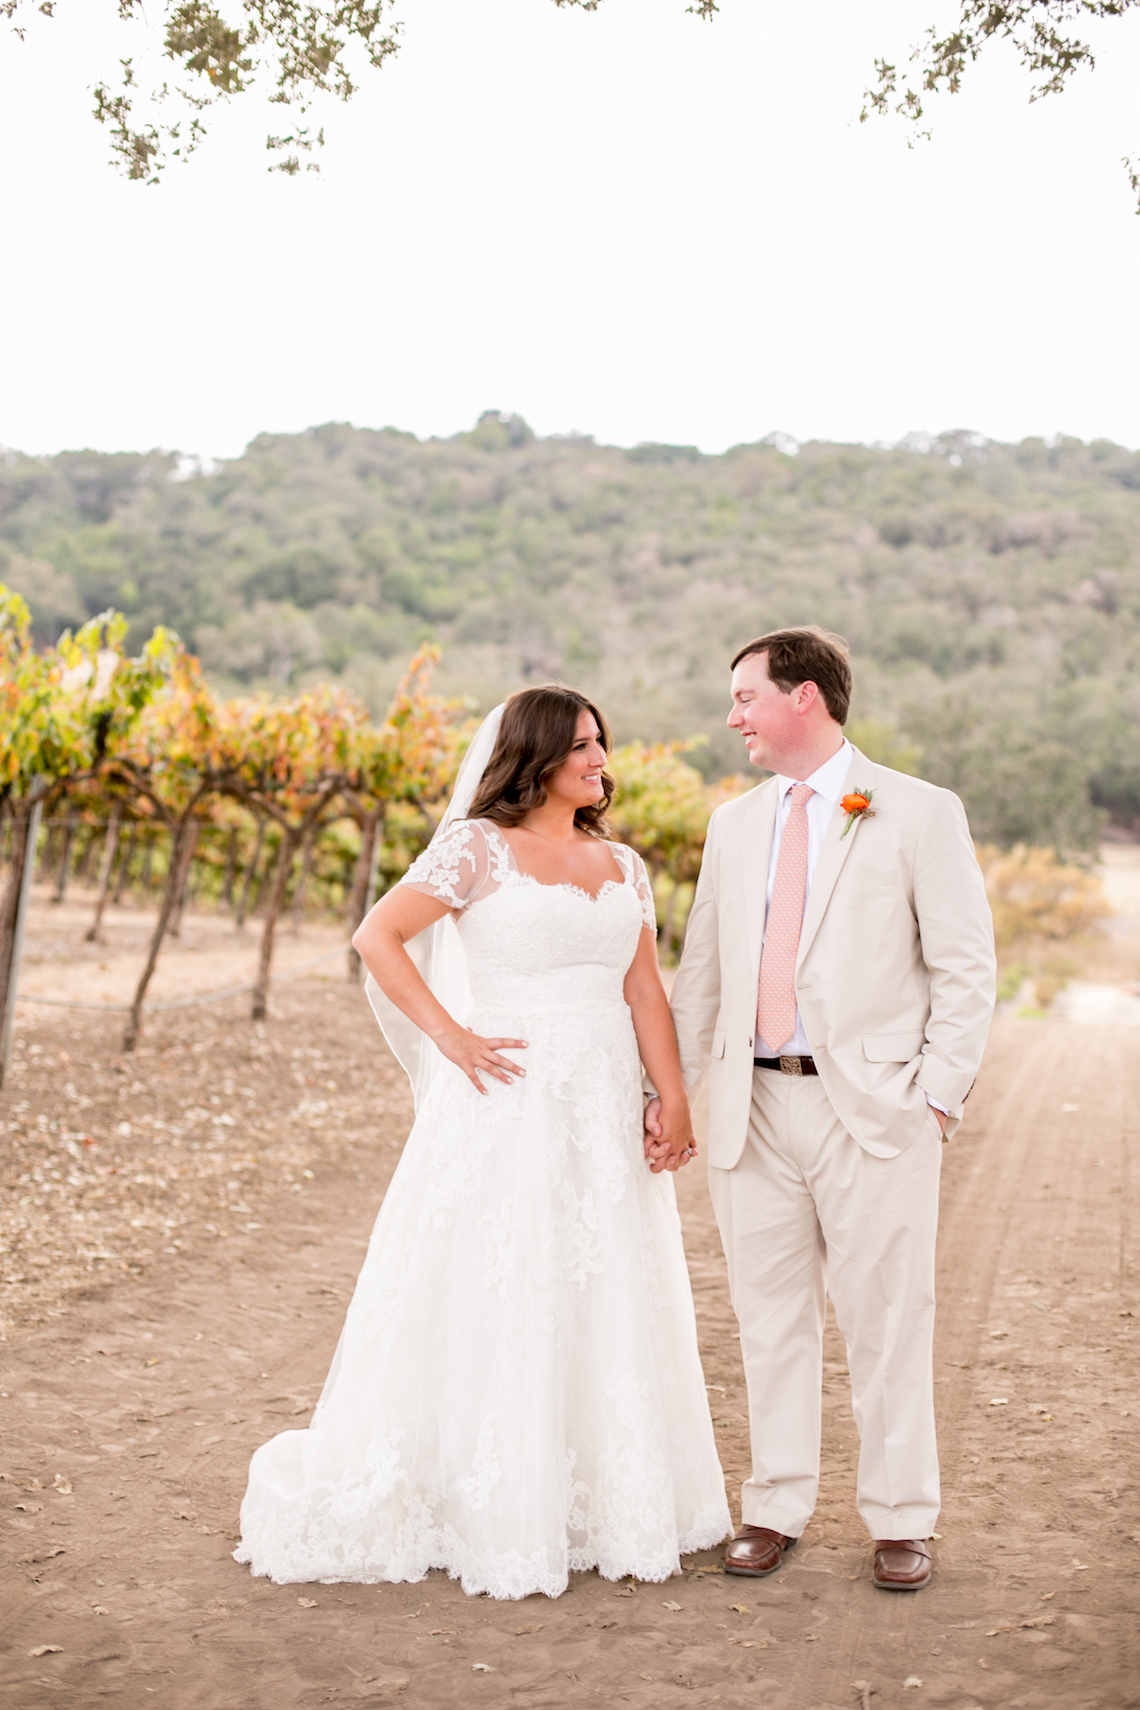 Harvest Winery Wedding by Brady Puryear 15